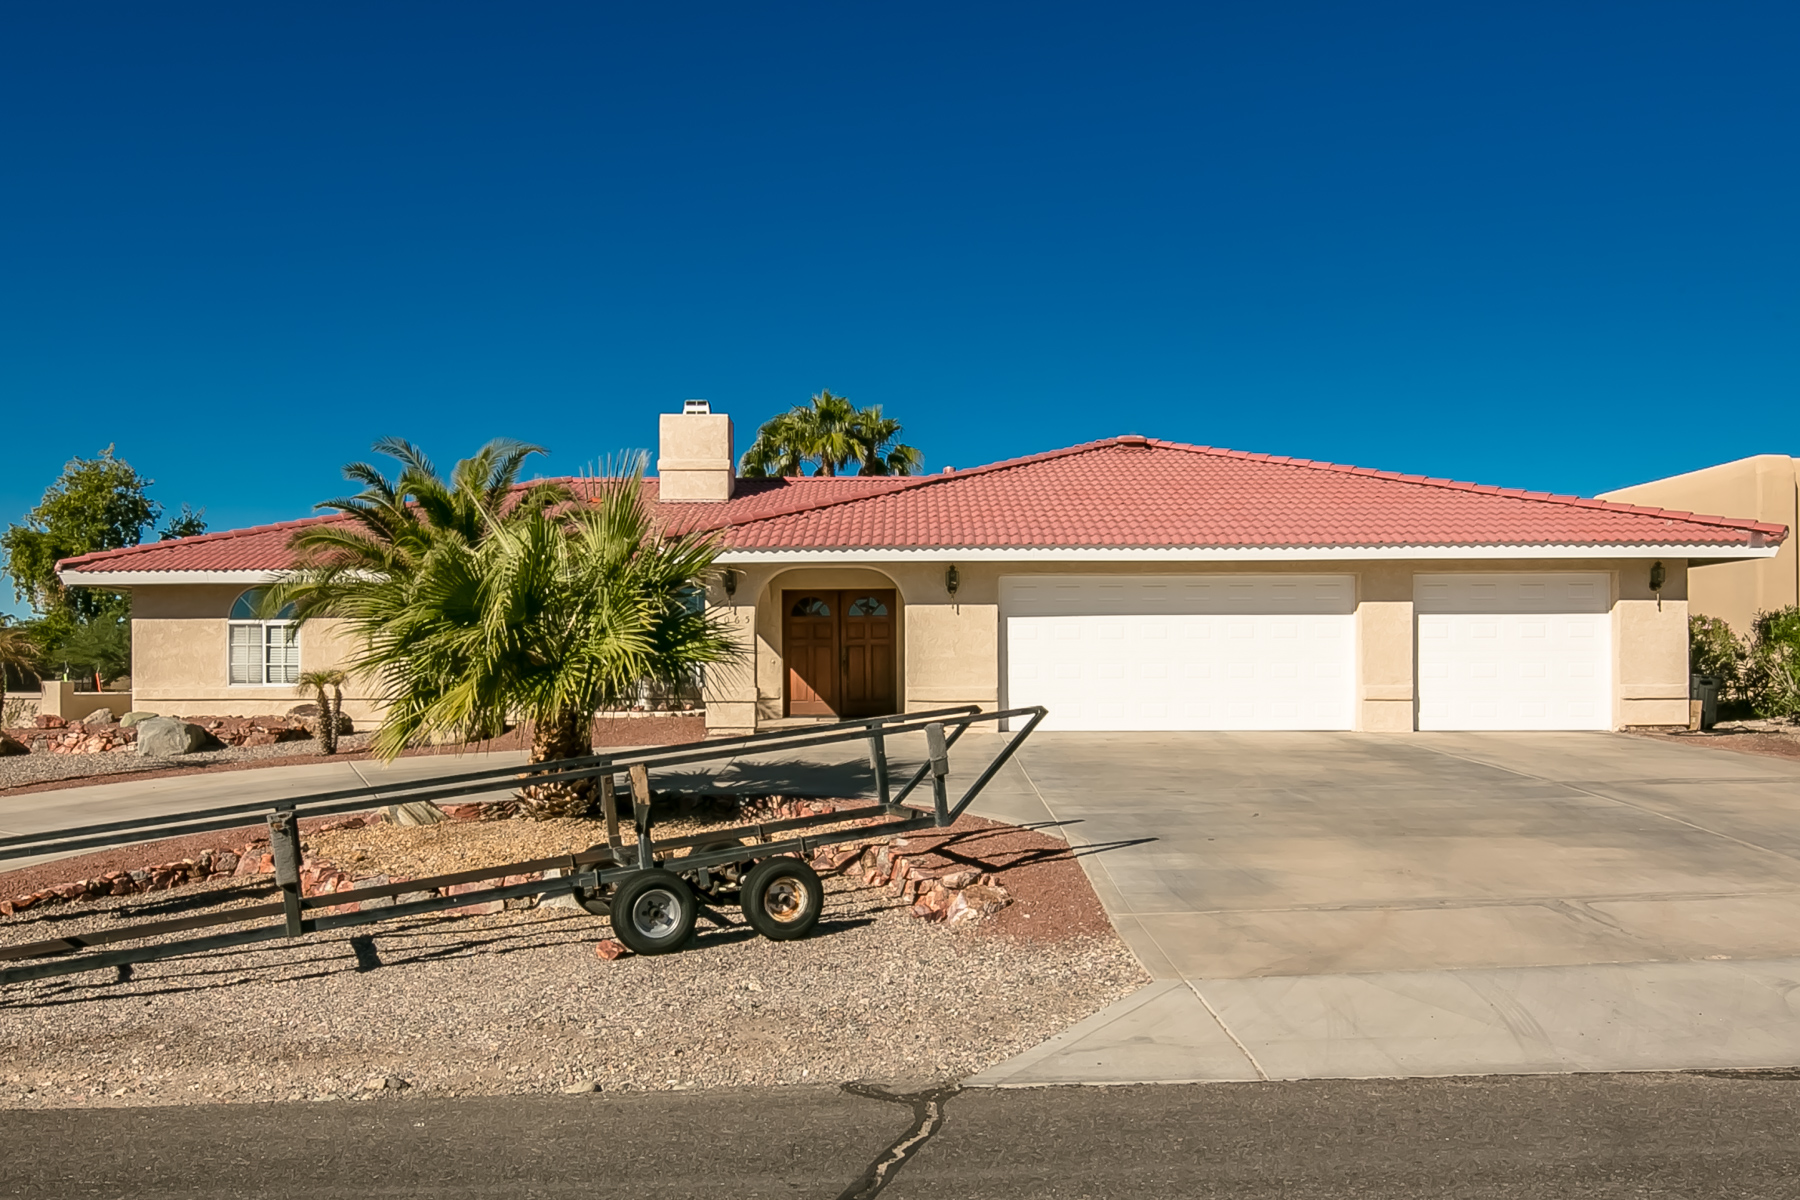 New Homes For Sale In Lake Havasu Az